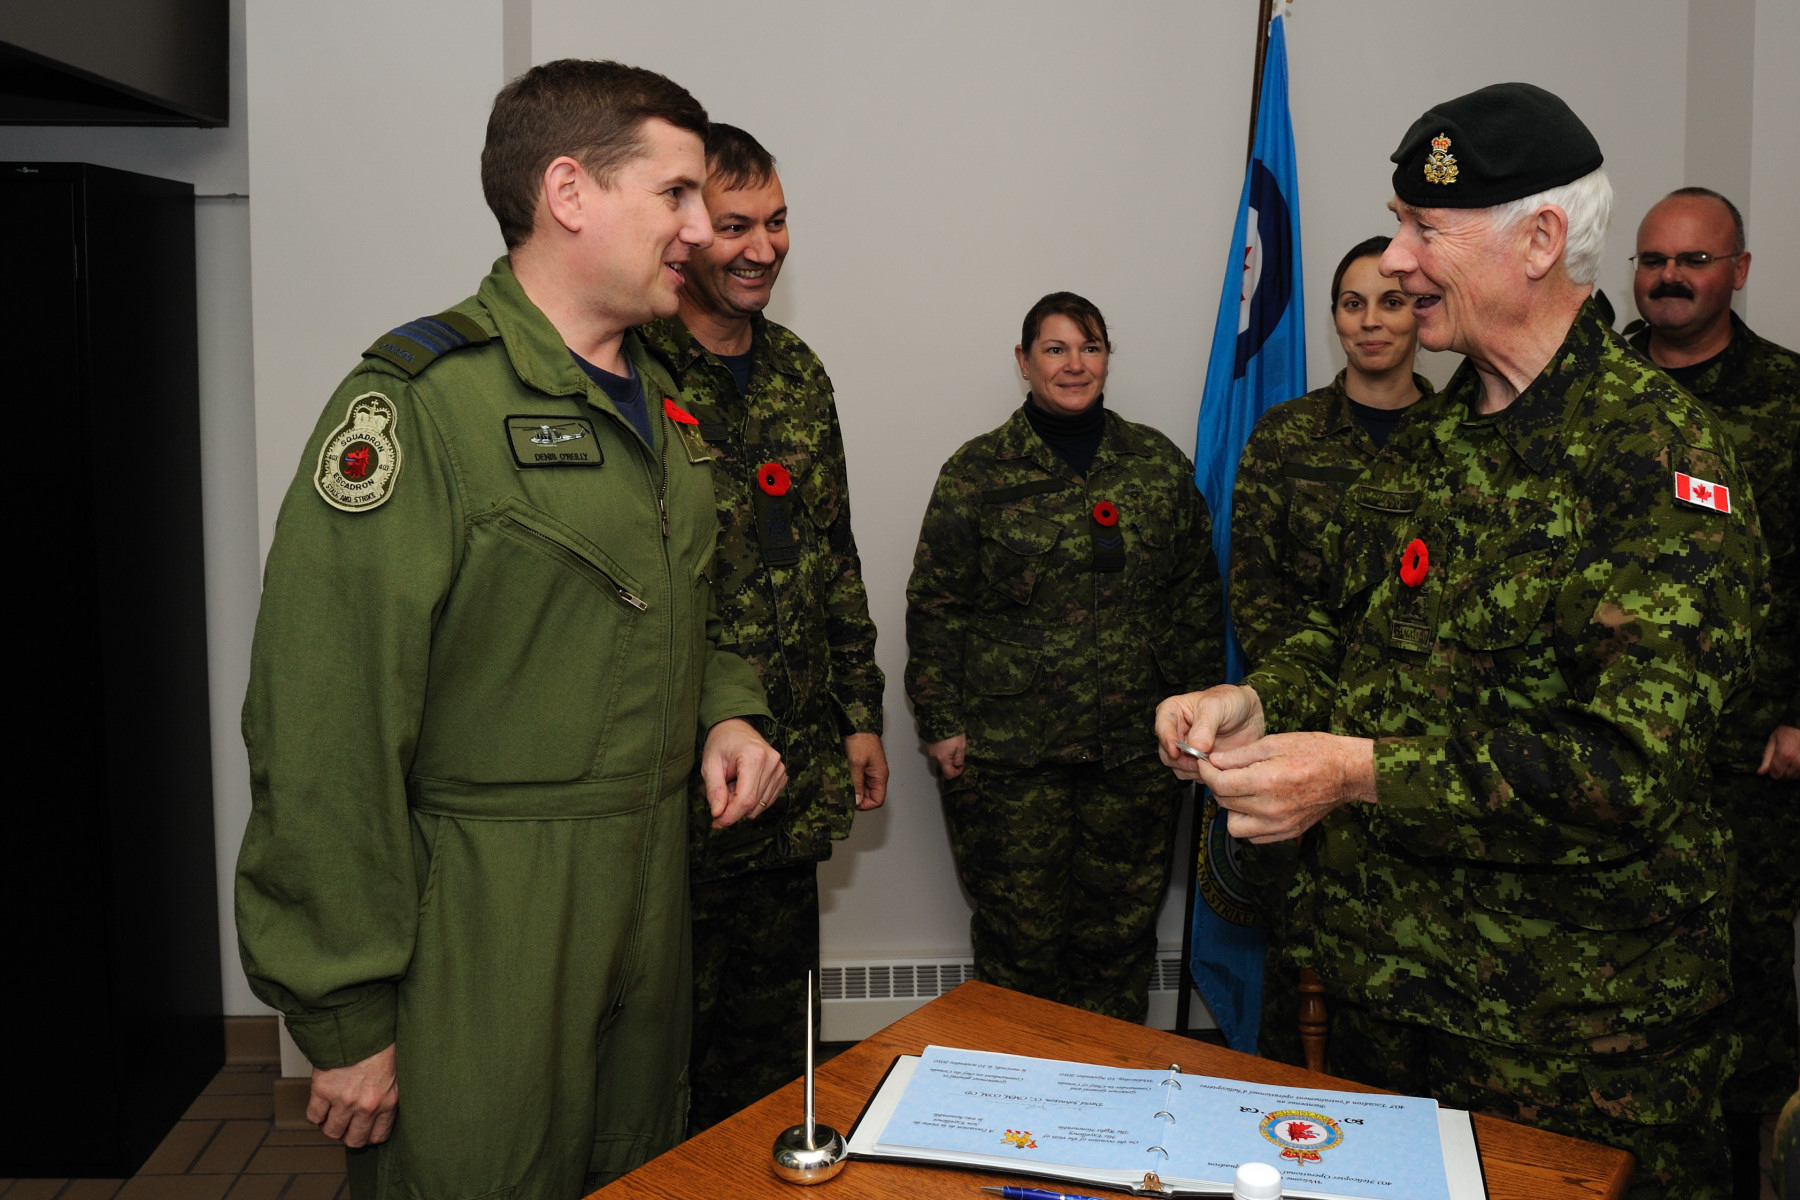 His Excellency received a 403 Squadron unit coin.